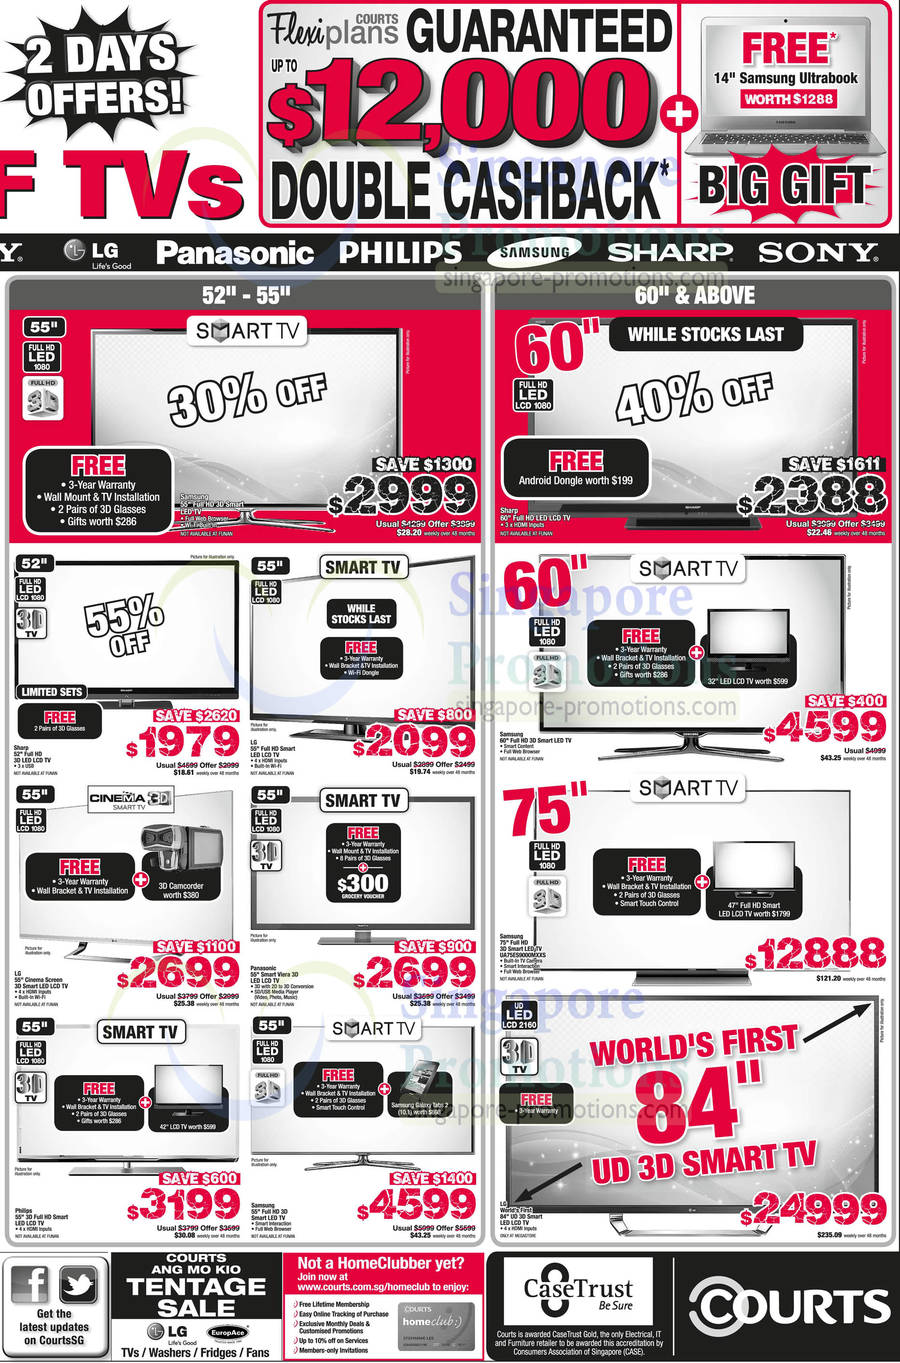 LED TVs, Panasonic, Samsung, LG, Philips, Sharp